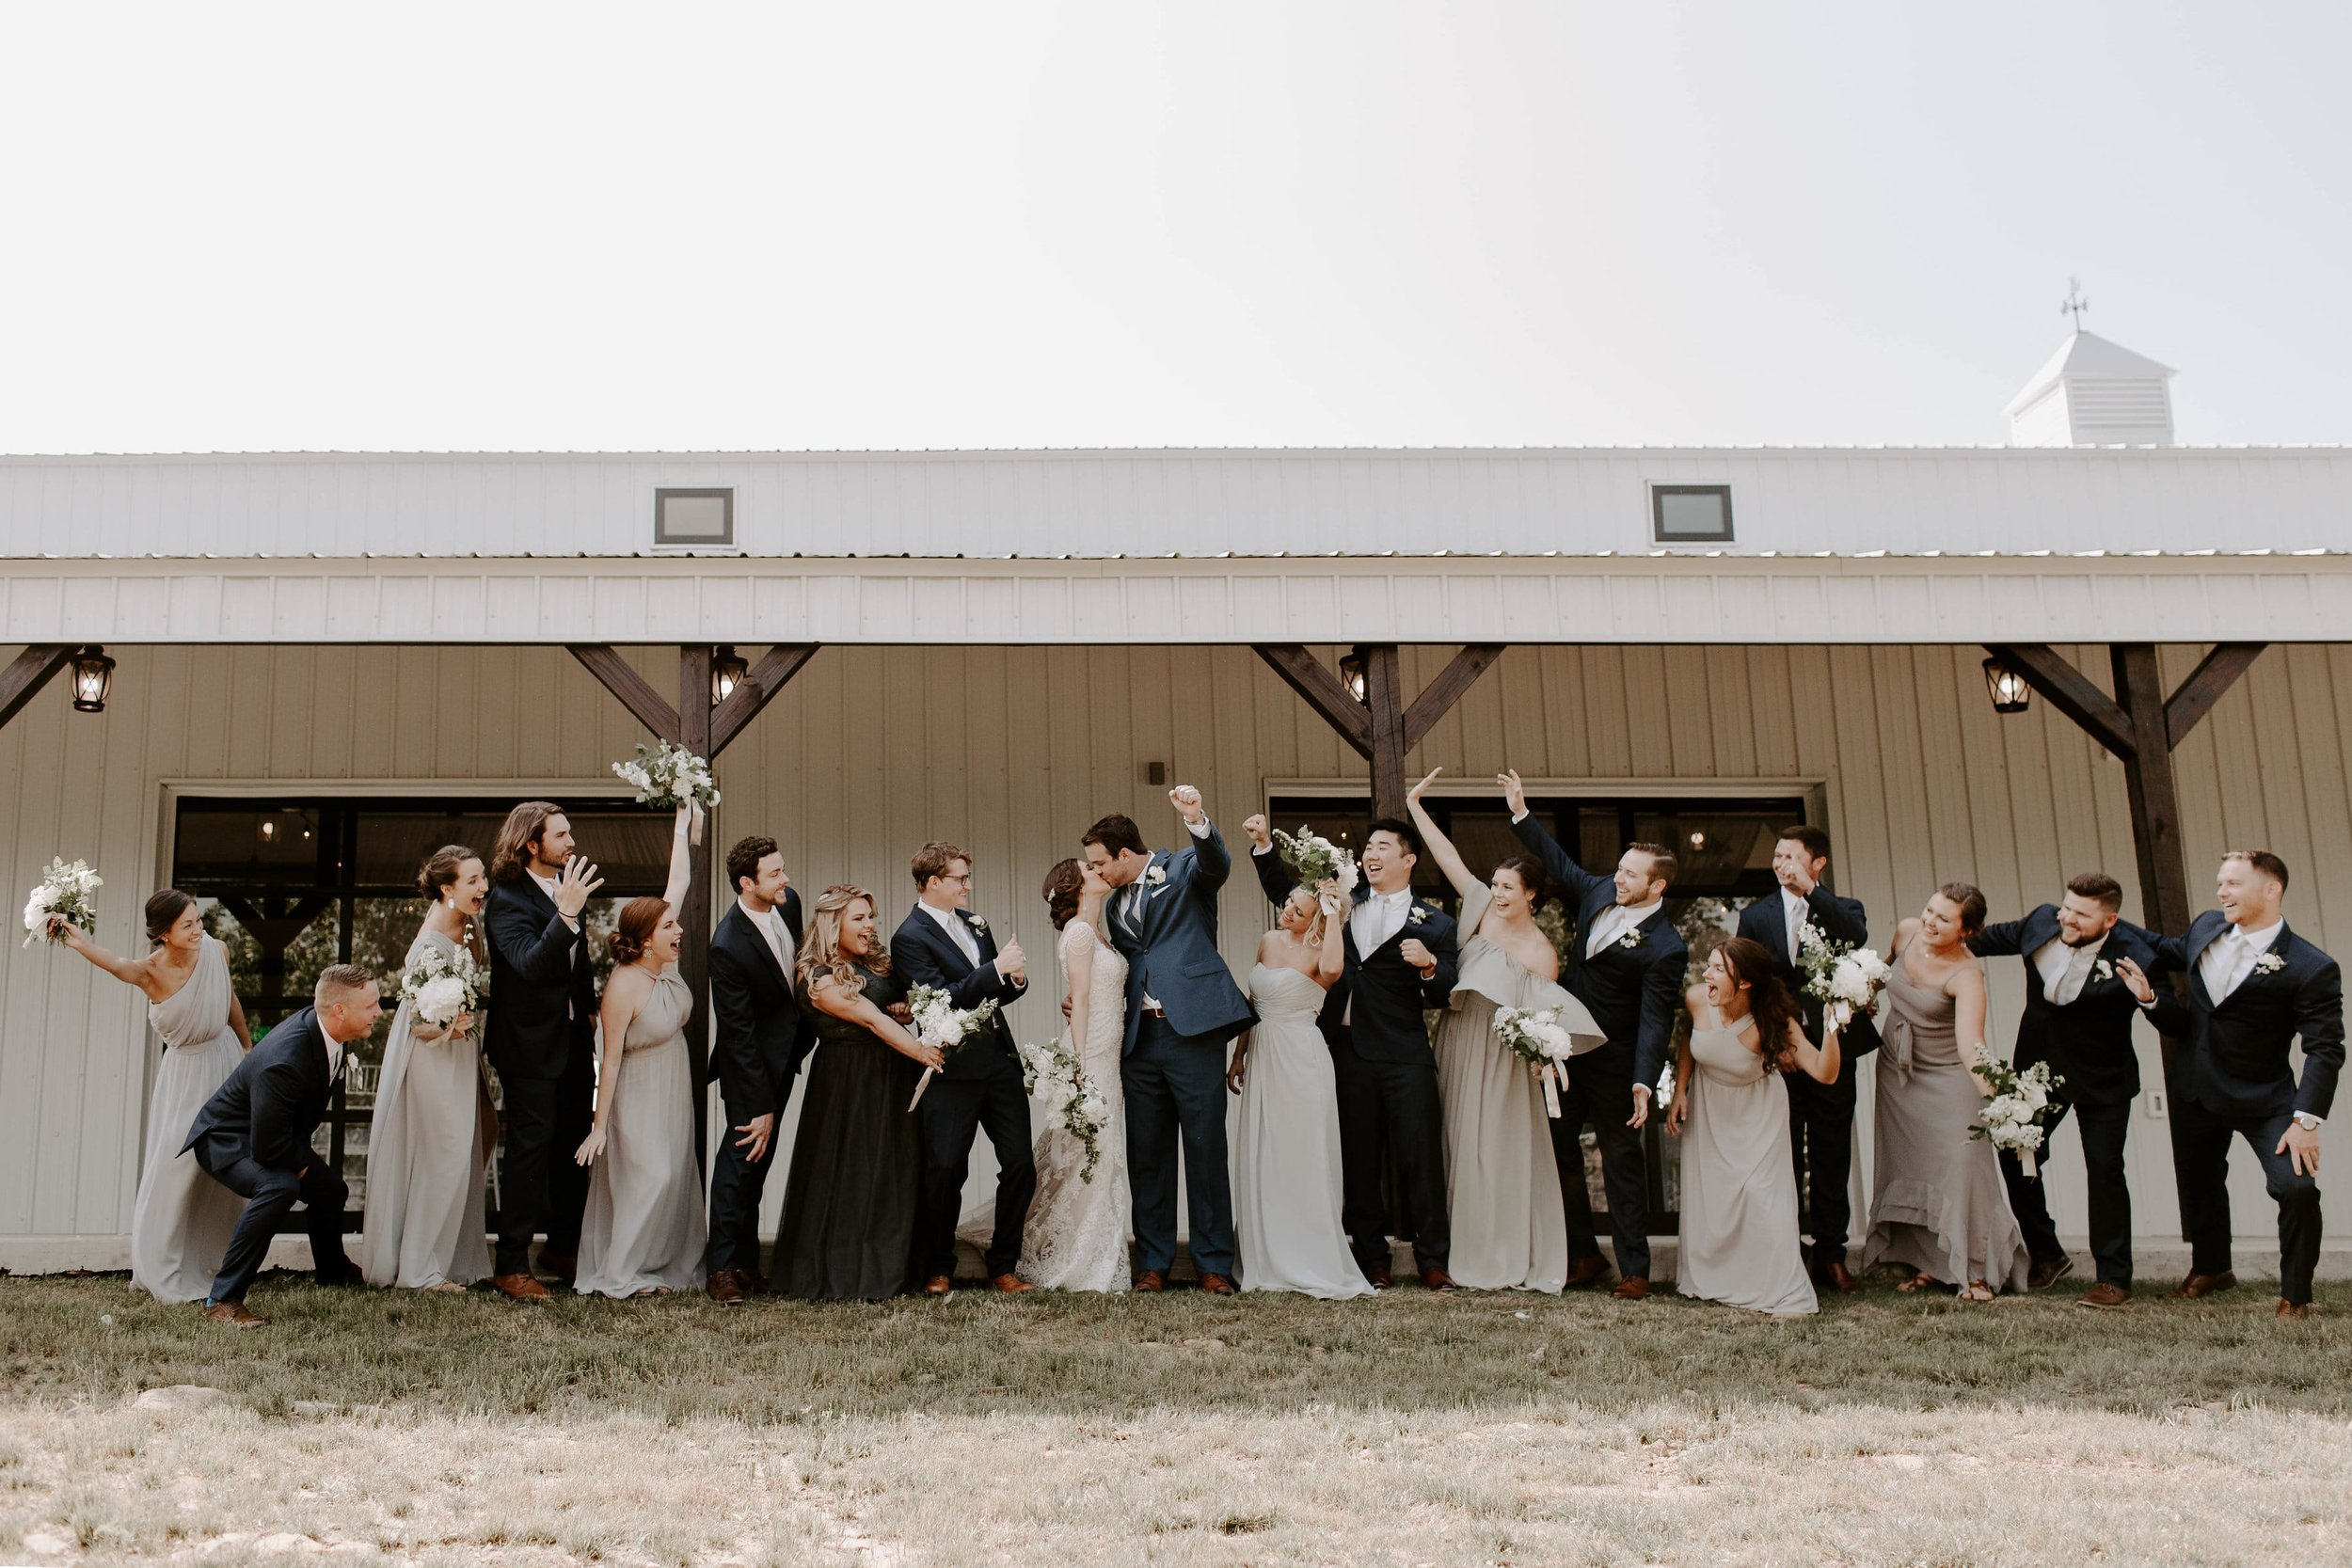 bridesmaids and groomsmen-min.jpg